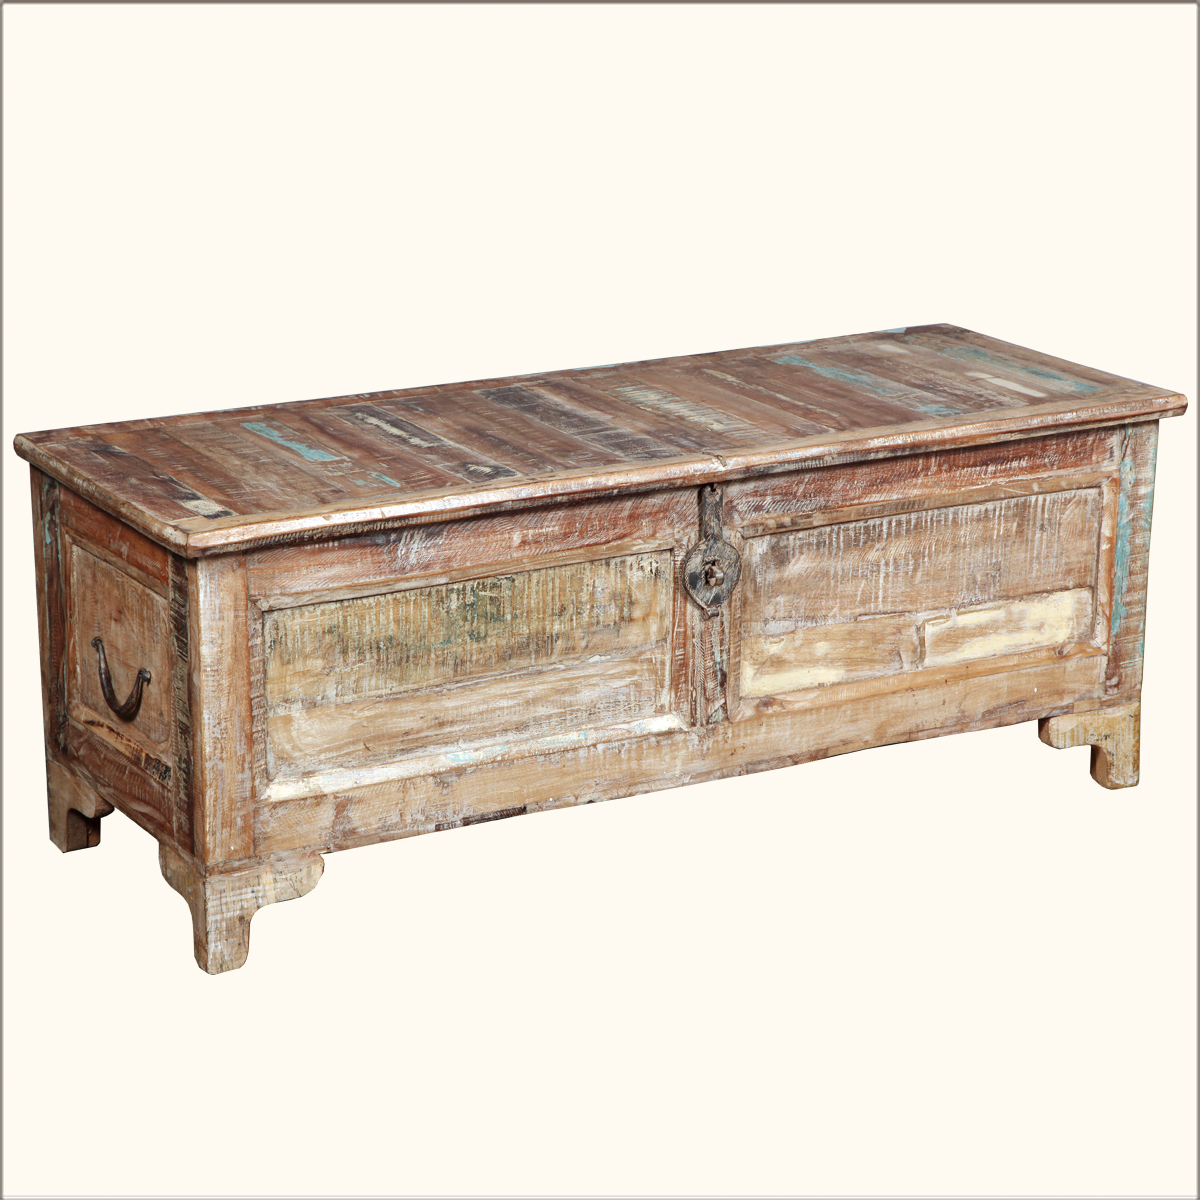 Rustic Reclaimed Wood Storage Blanket Box Coffee Table Chest Trunk Furniture Ebay